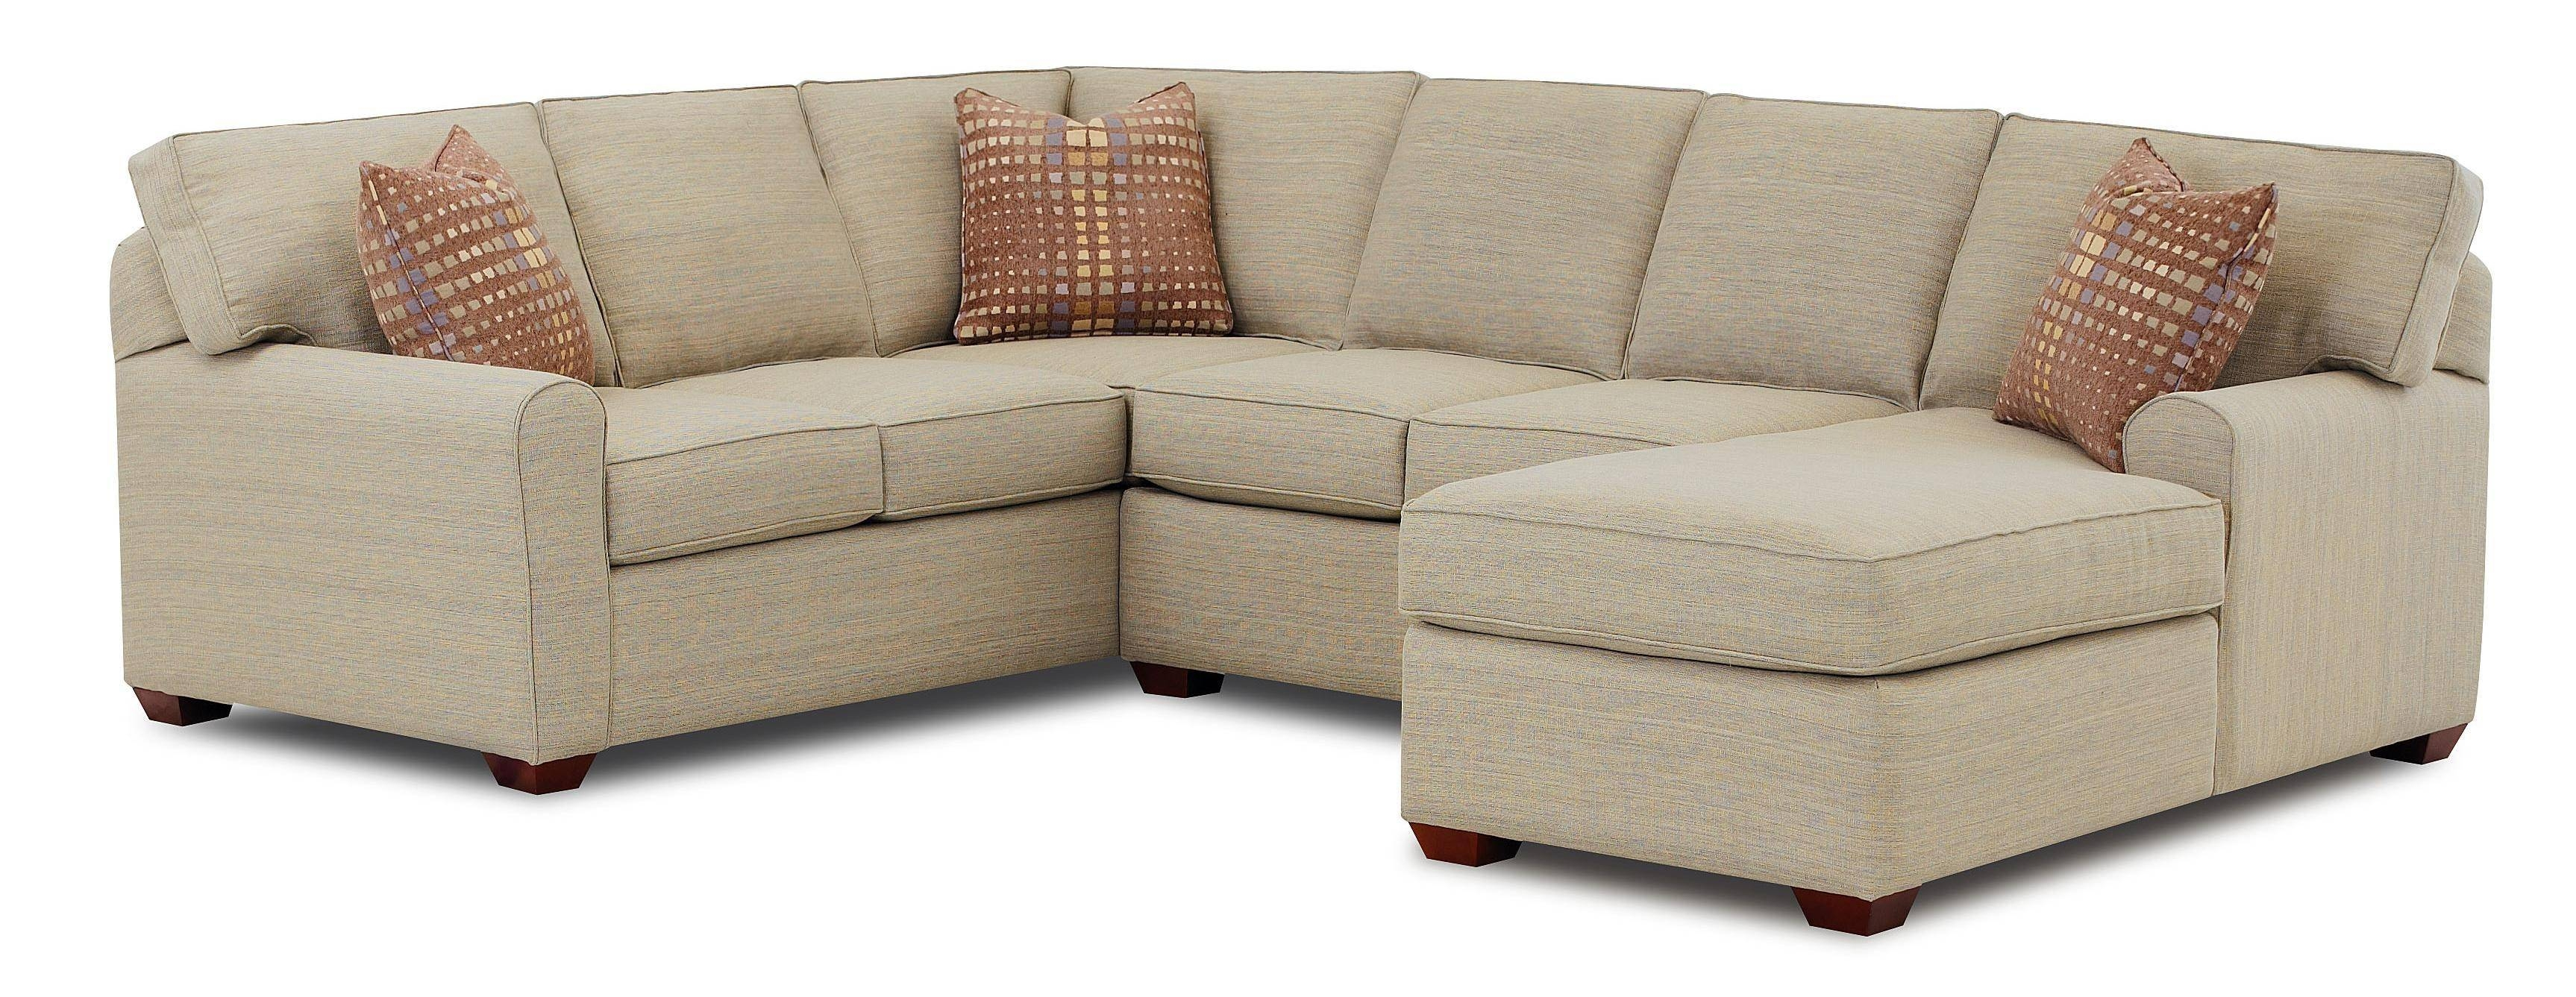 20 Inspirations 3 Piece Slipcover Sets | Sofa Ideas regarding 3 Piece Slipcover Sets (Image 4 of 15)